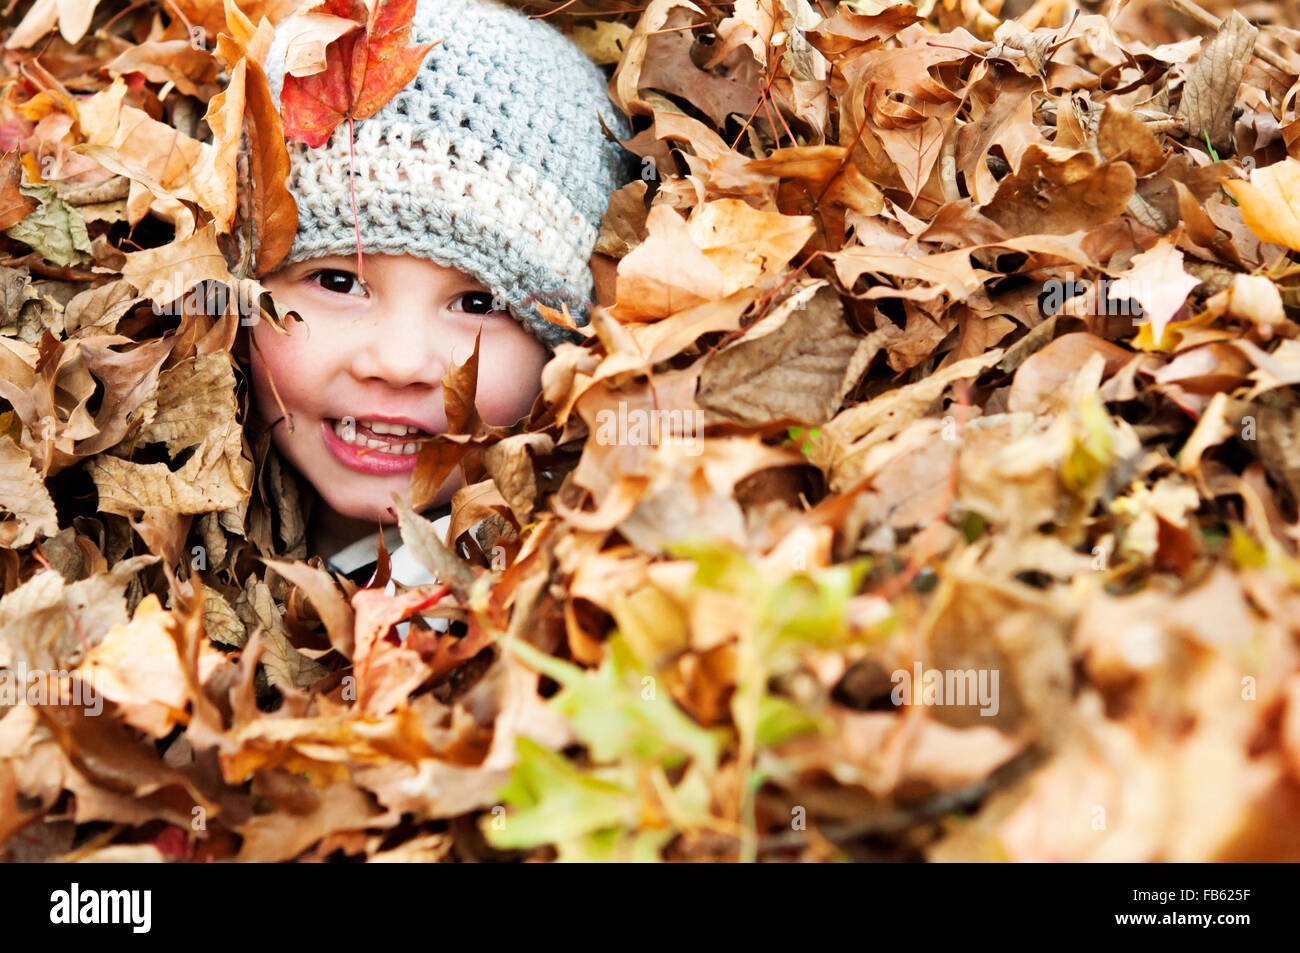 Little smiling boy peeking out of leaves - Stock Image